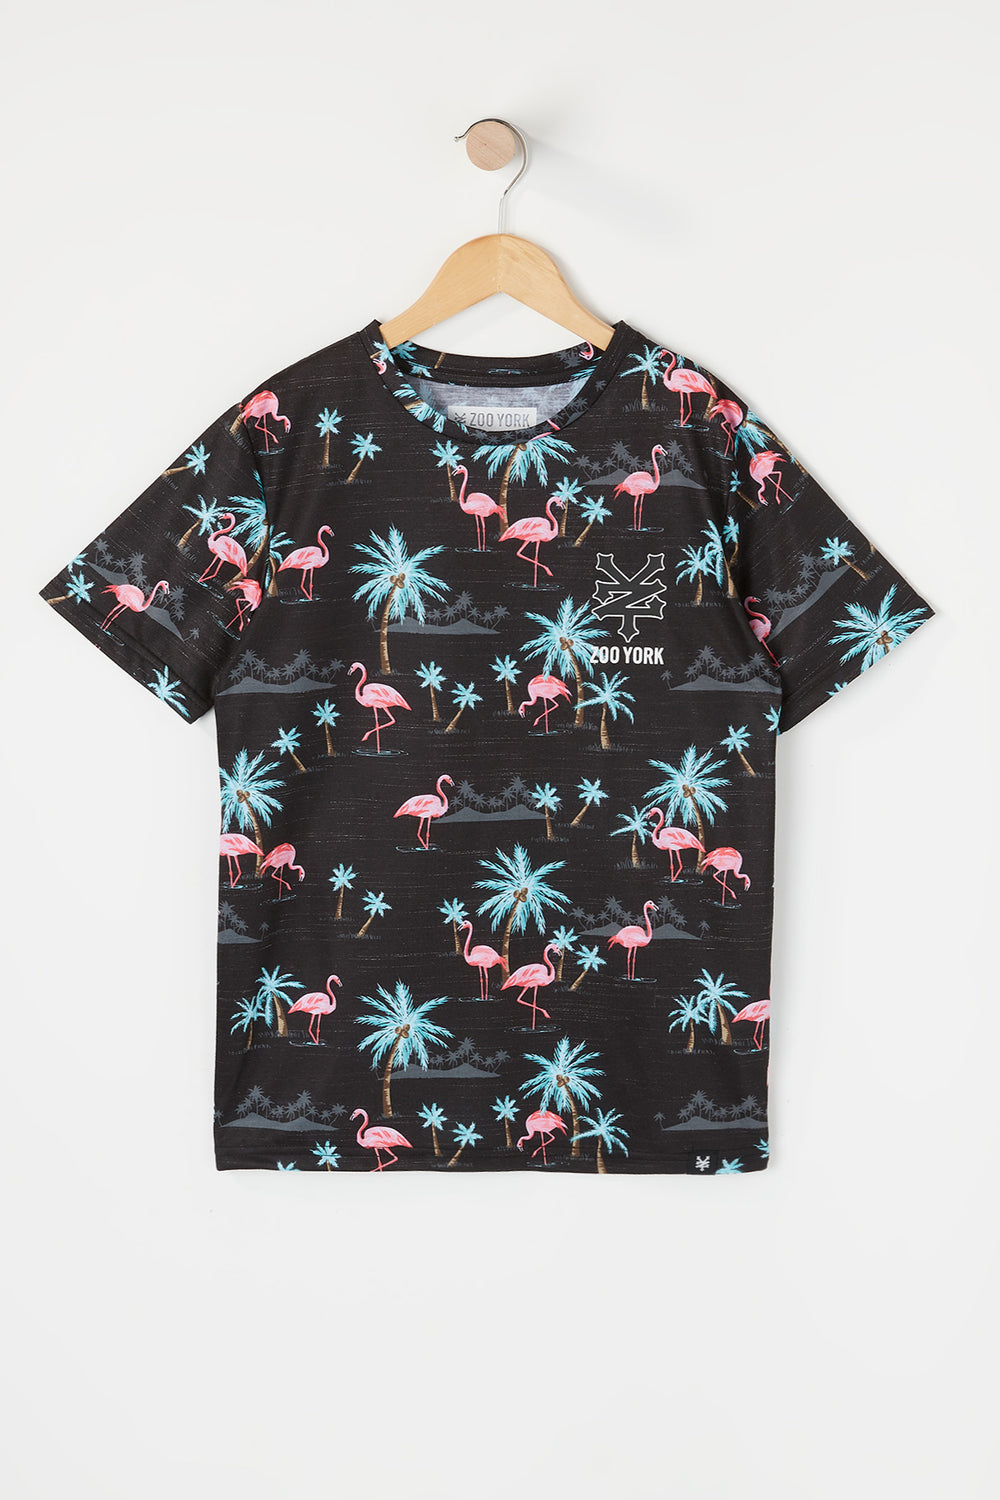 T-Shirt Motif Flamants Roses Zoo York Garçon Noir